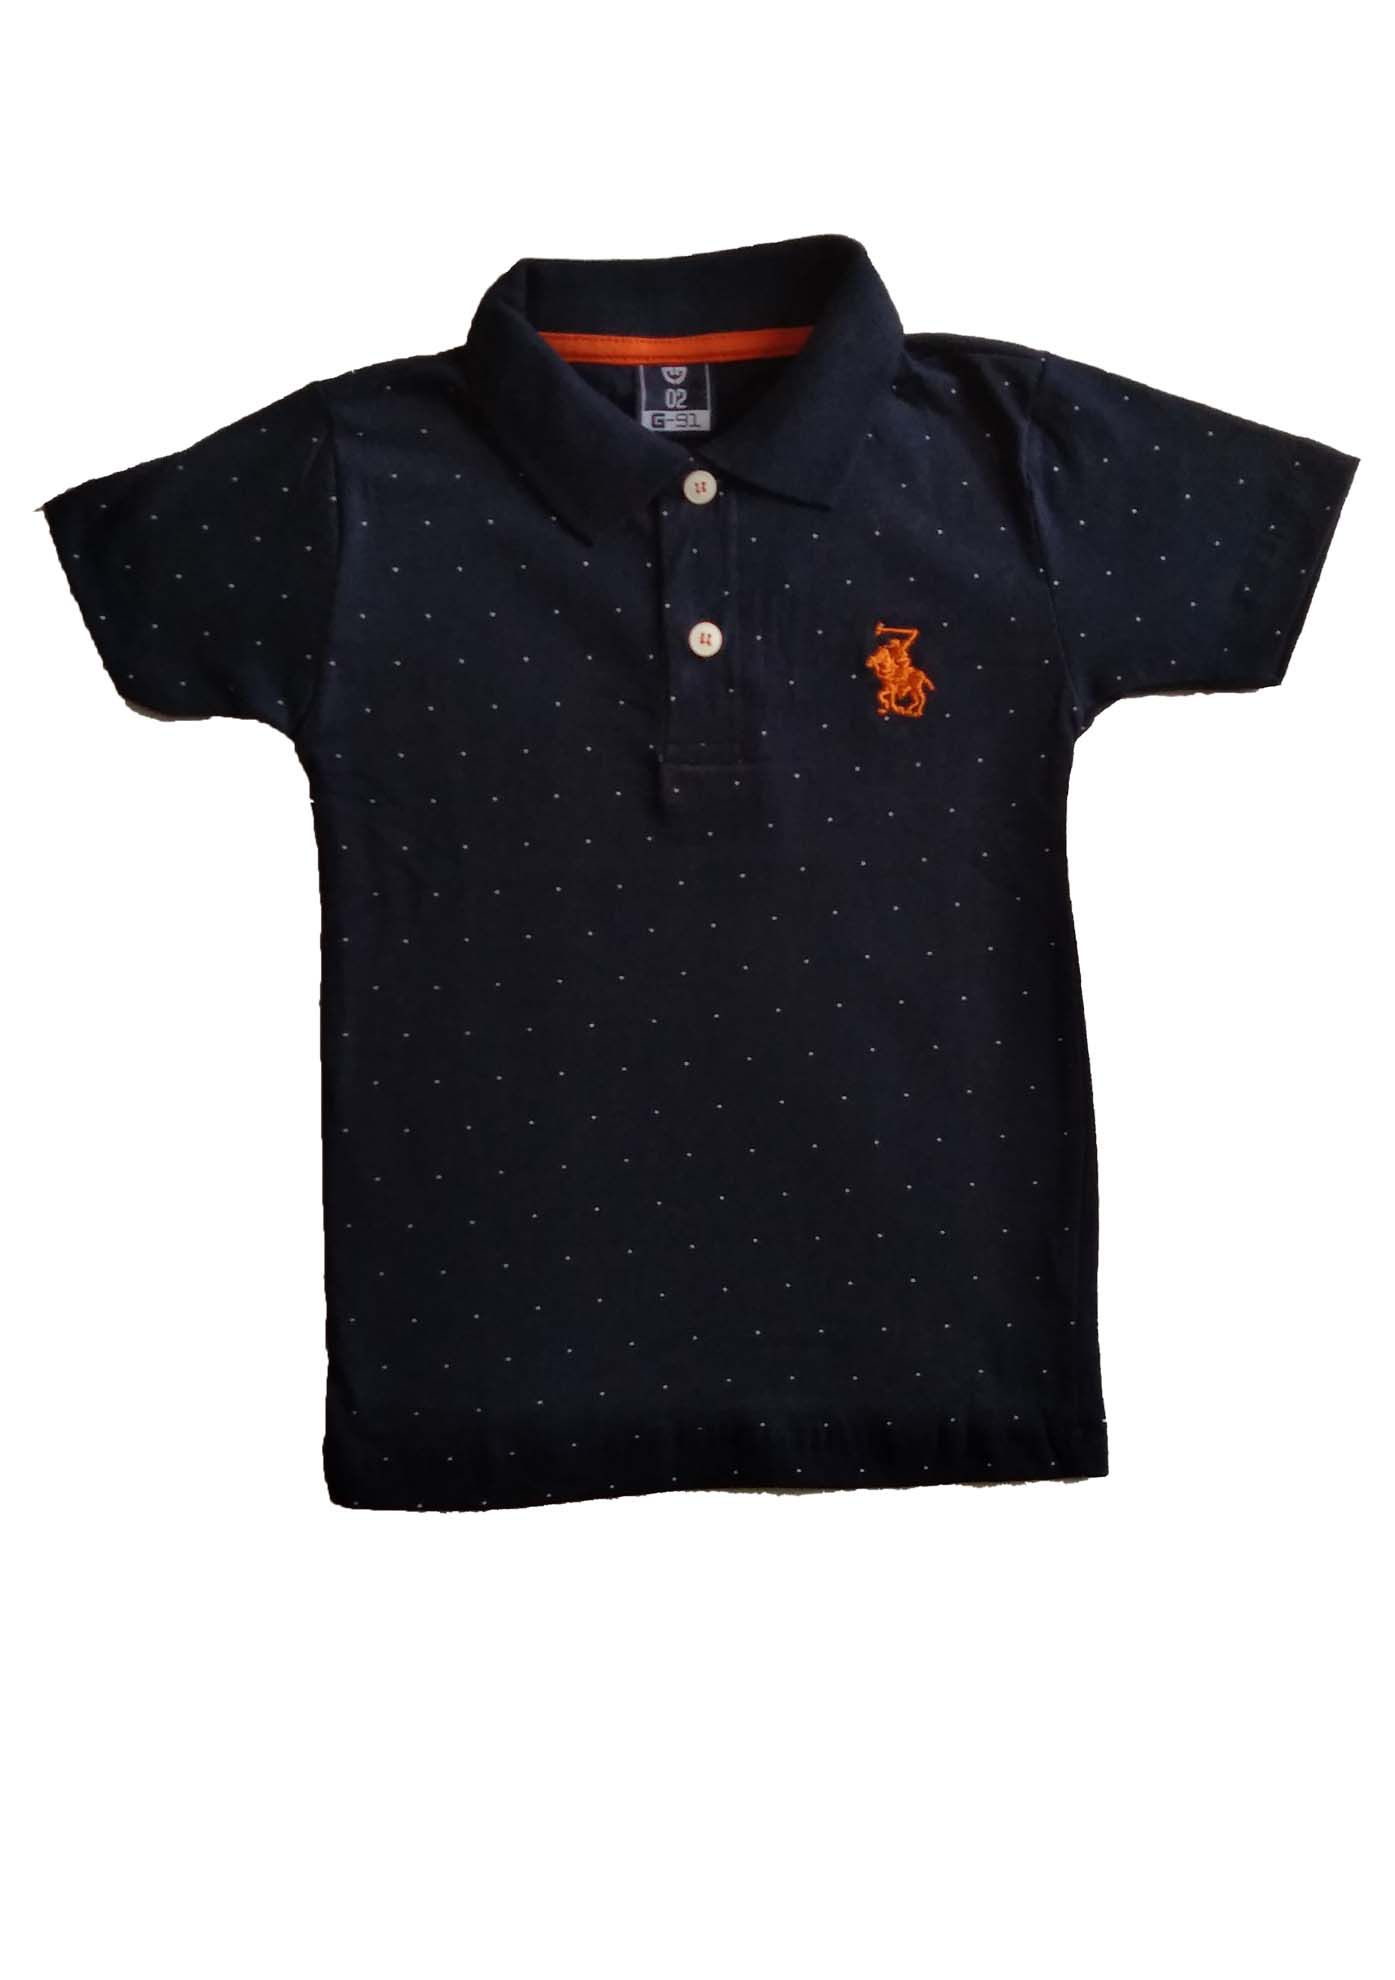 CAMISETA POLO ESTAMPADA E BORDADO